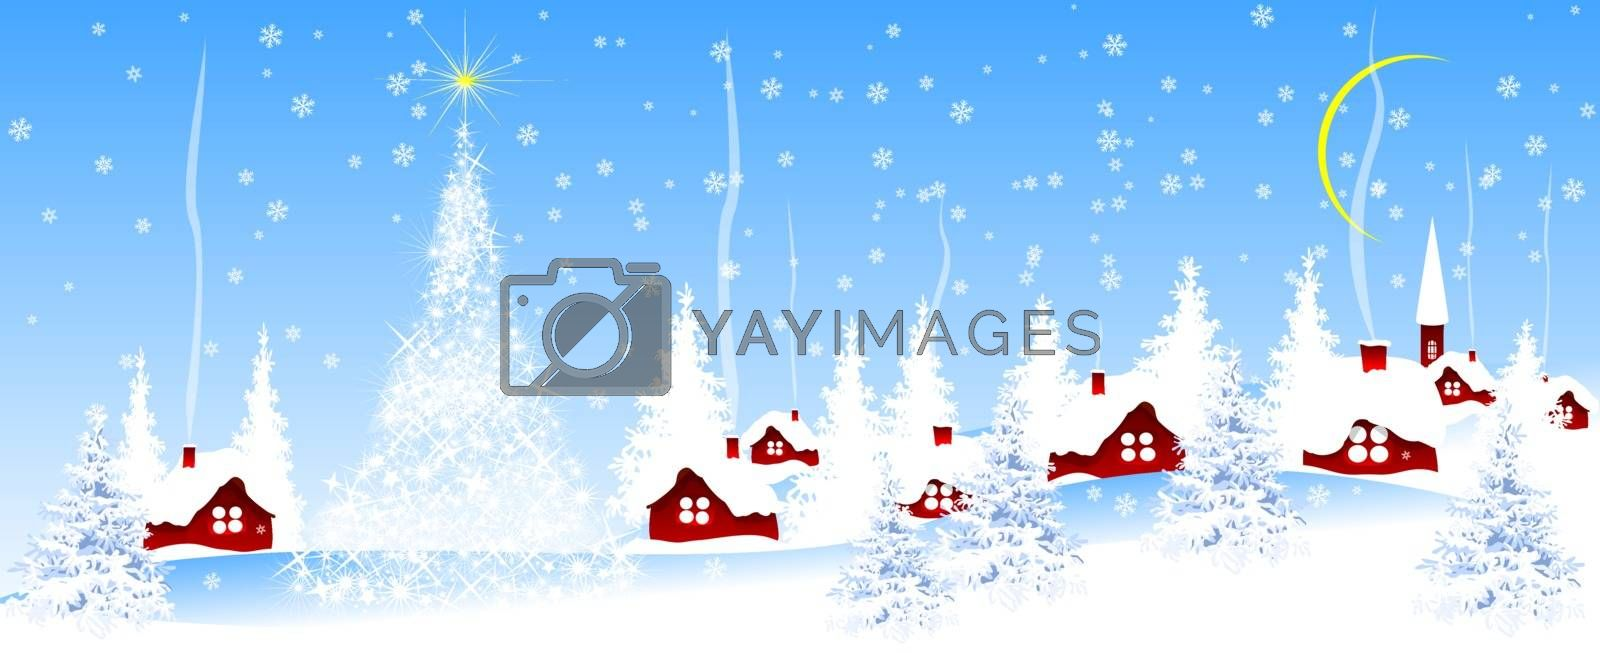 Village covered with snow against the blue sky. Christmas blue banner.